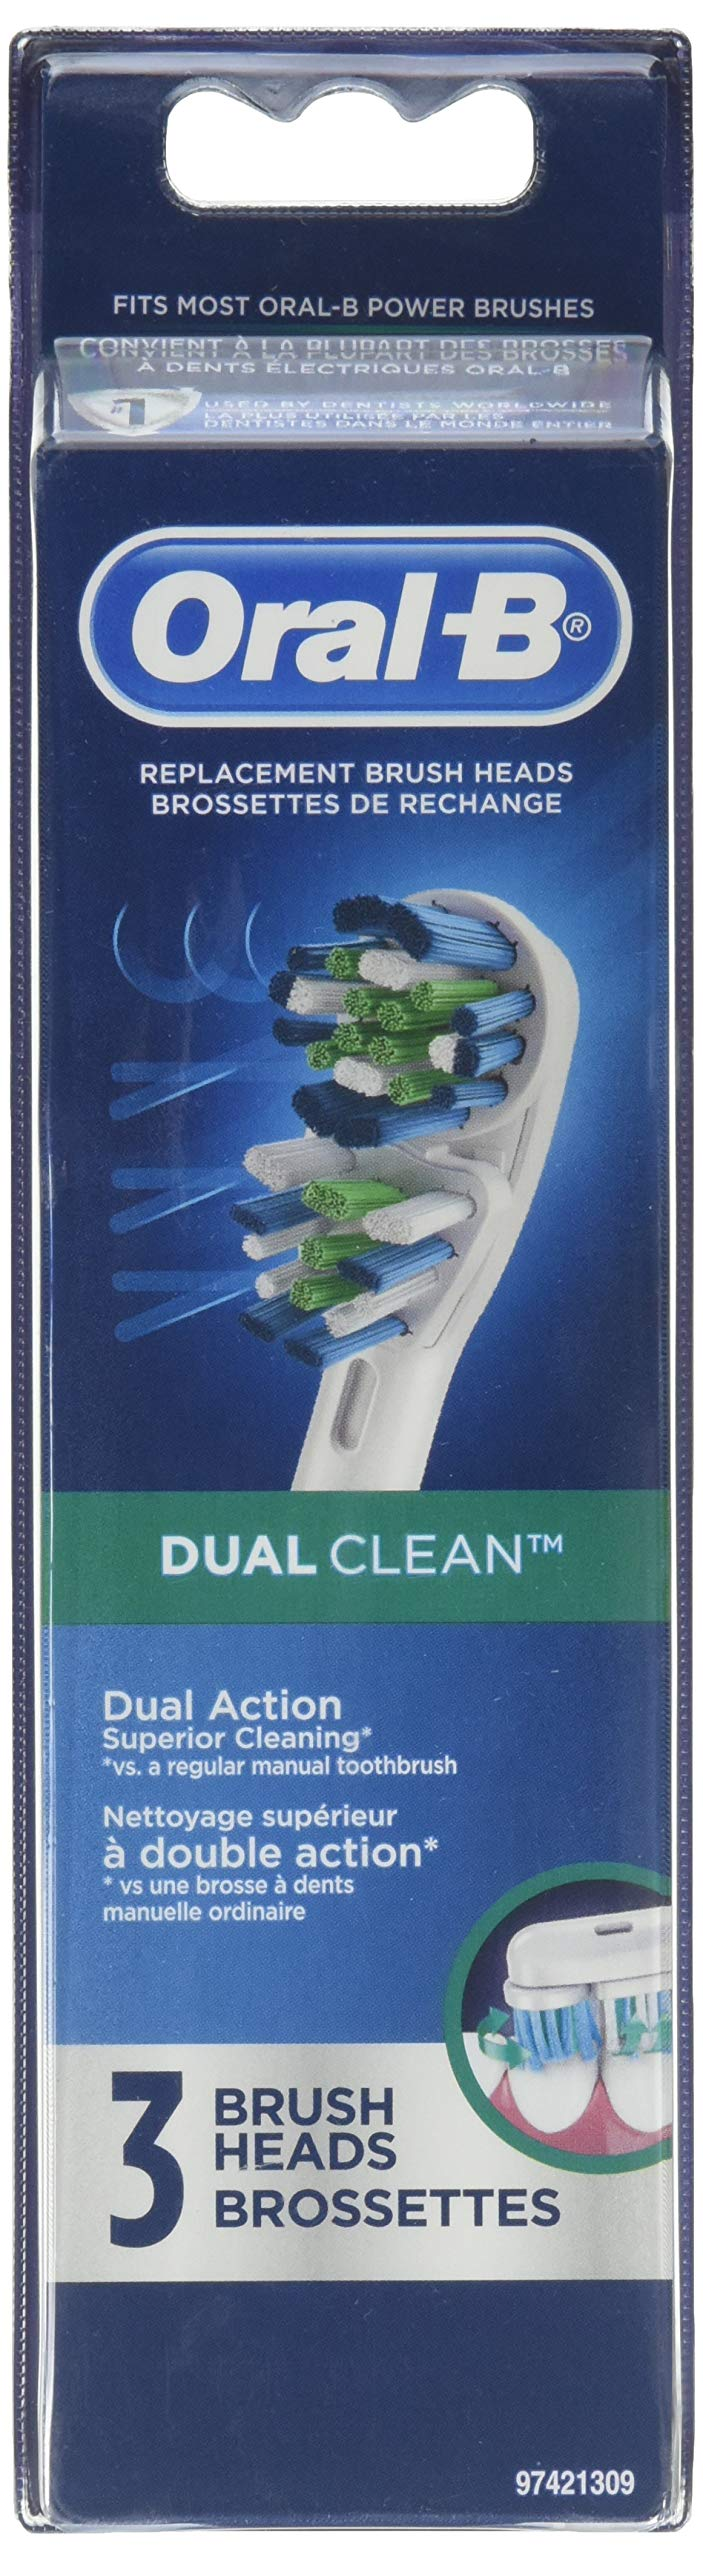 Oral-B Dual Clean 3 Replacement Brush Head